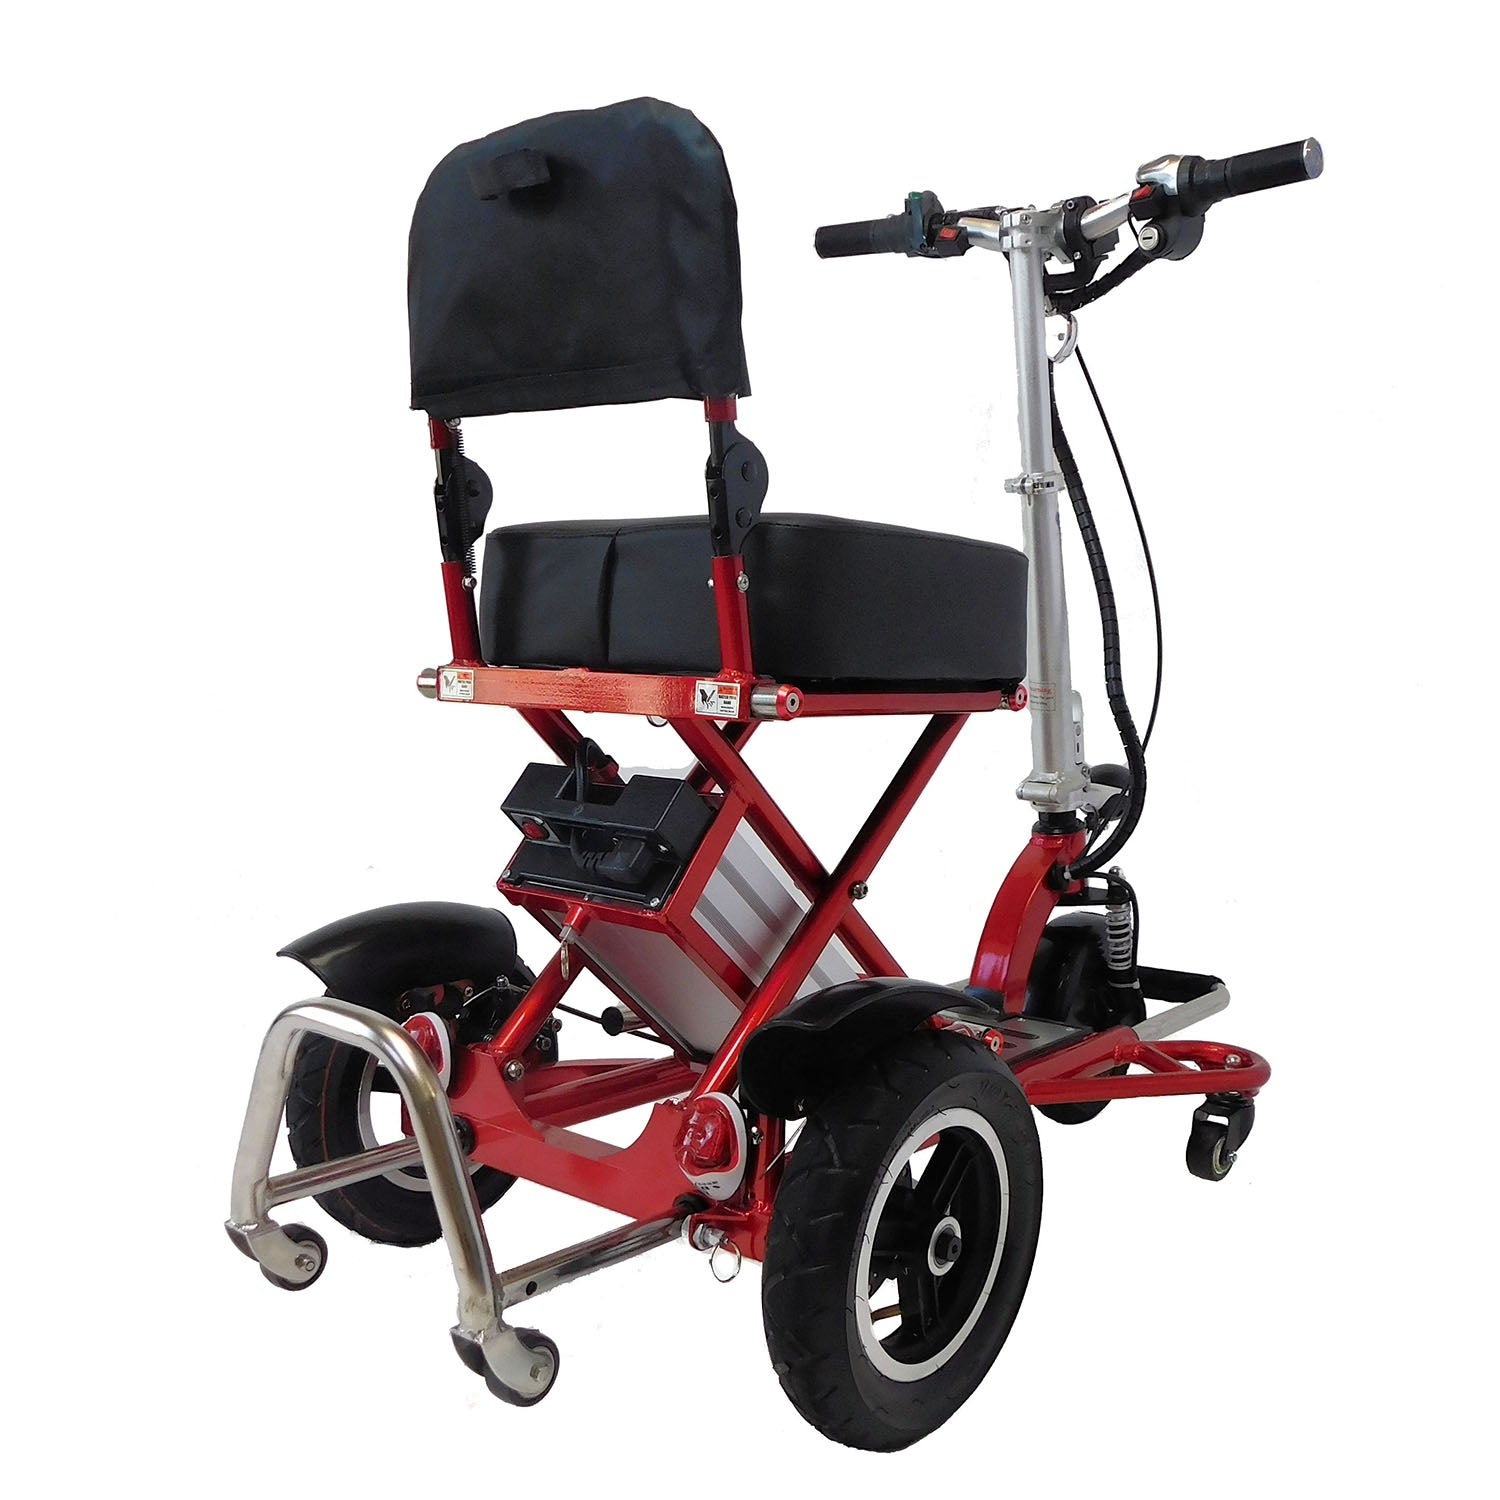 Triaxe Sport Folding 3-Wheel Mobility Scooter